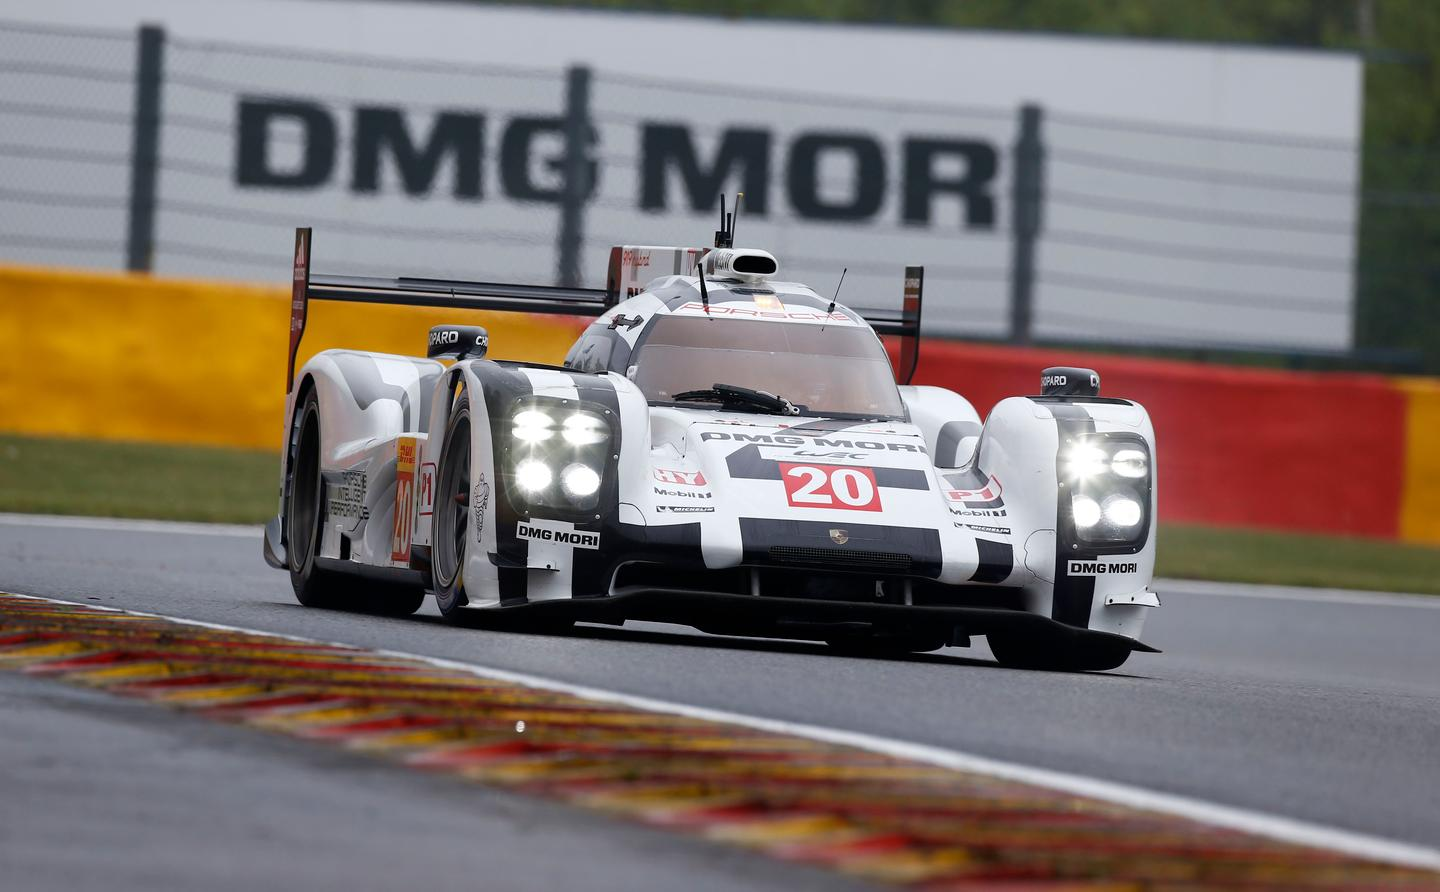 The Porsche 919 Hybrid in action at the 6 Hours of Spa-Francorchamps in Belgium on May 3